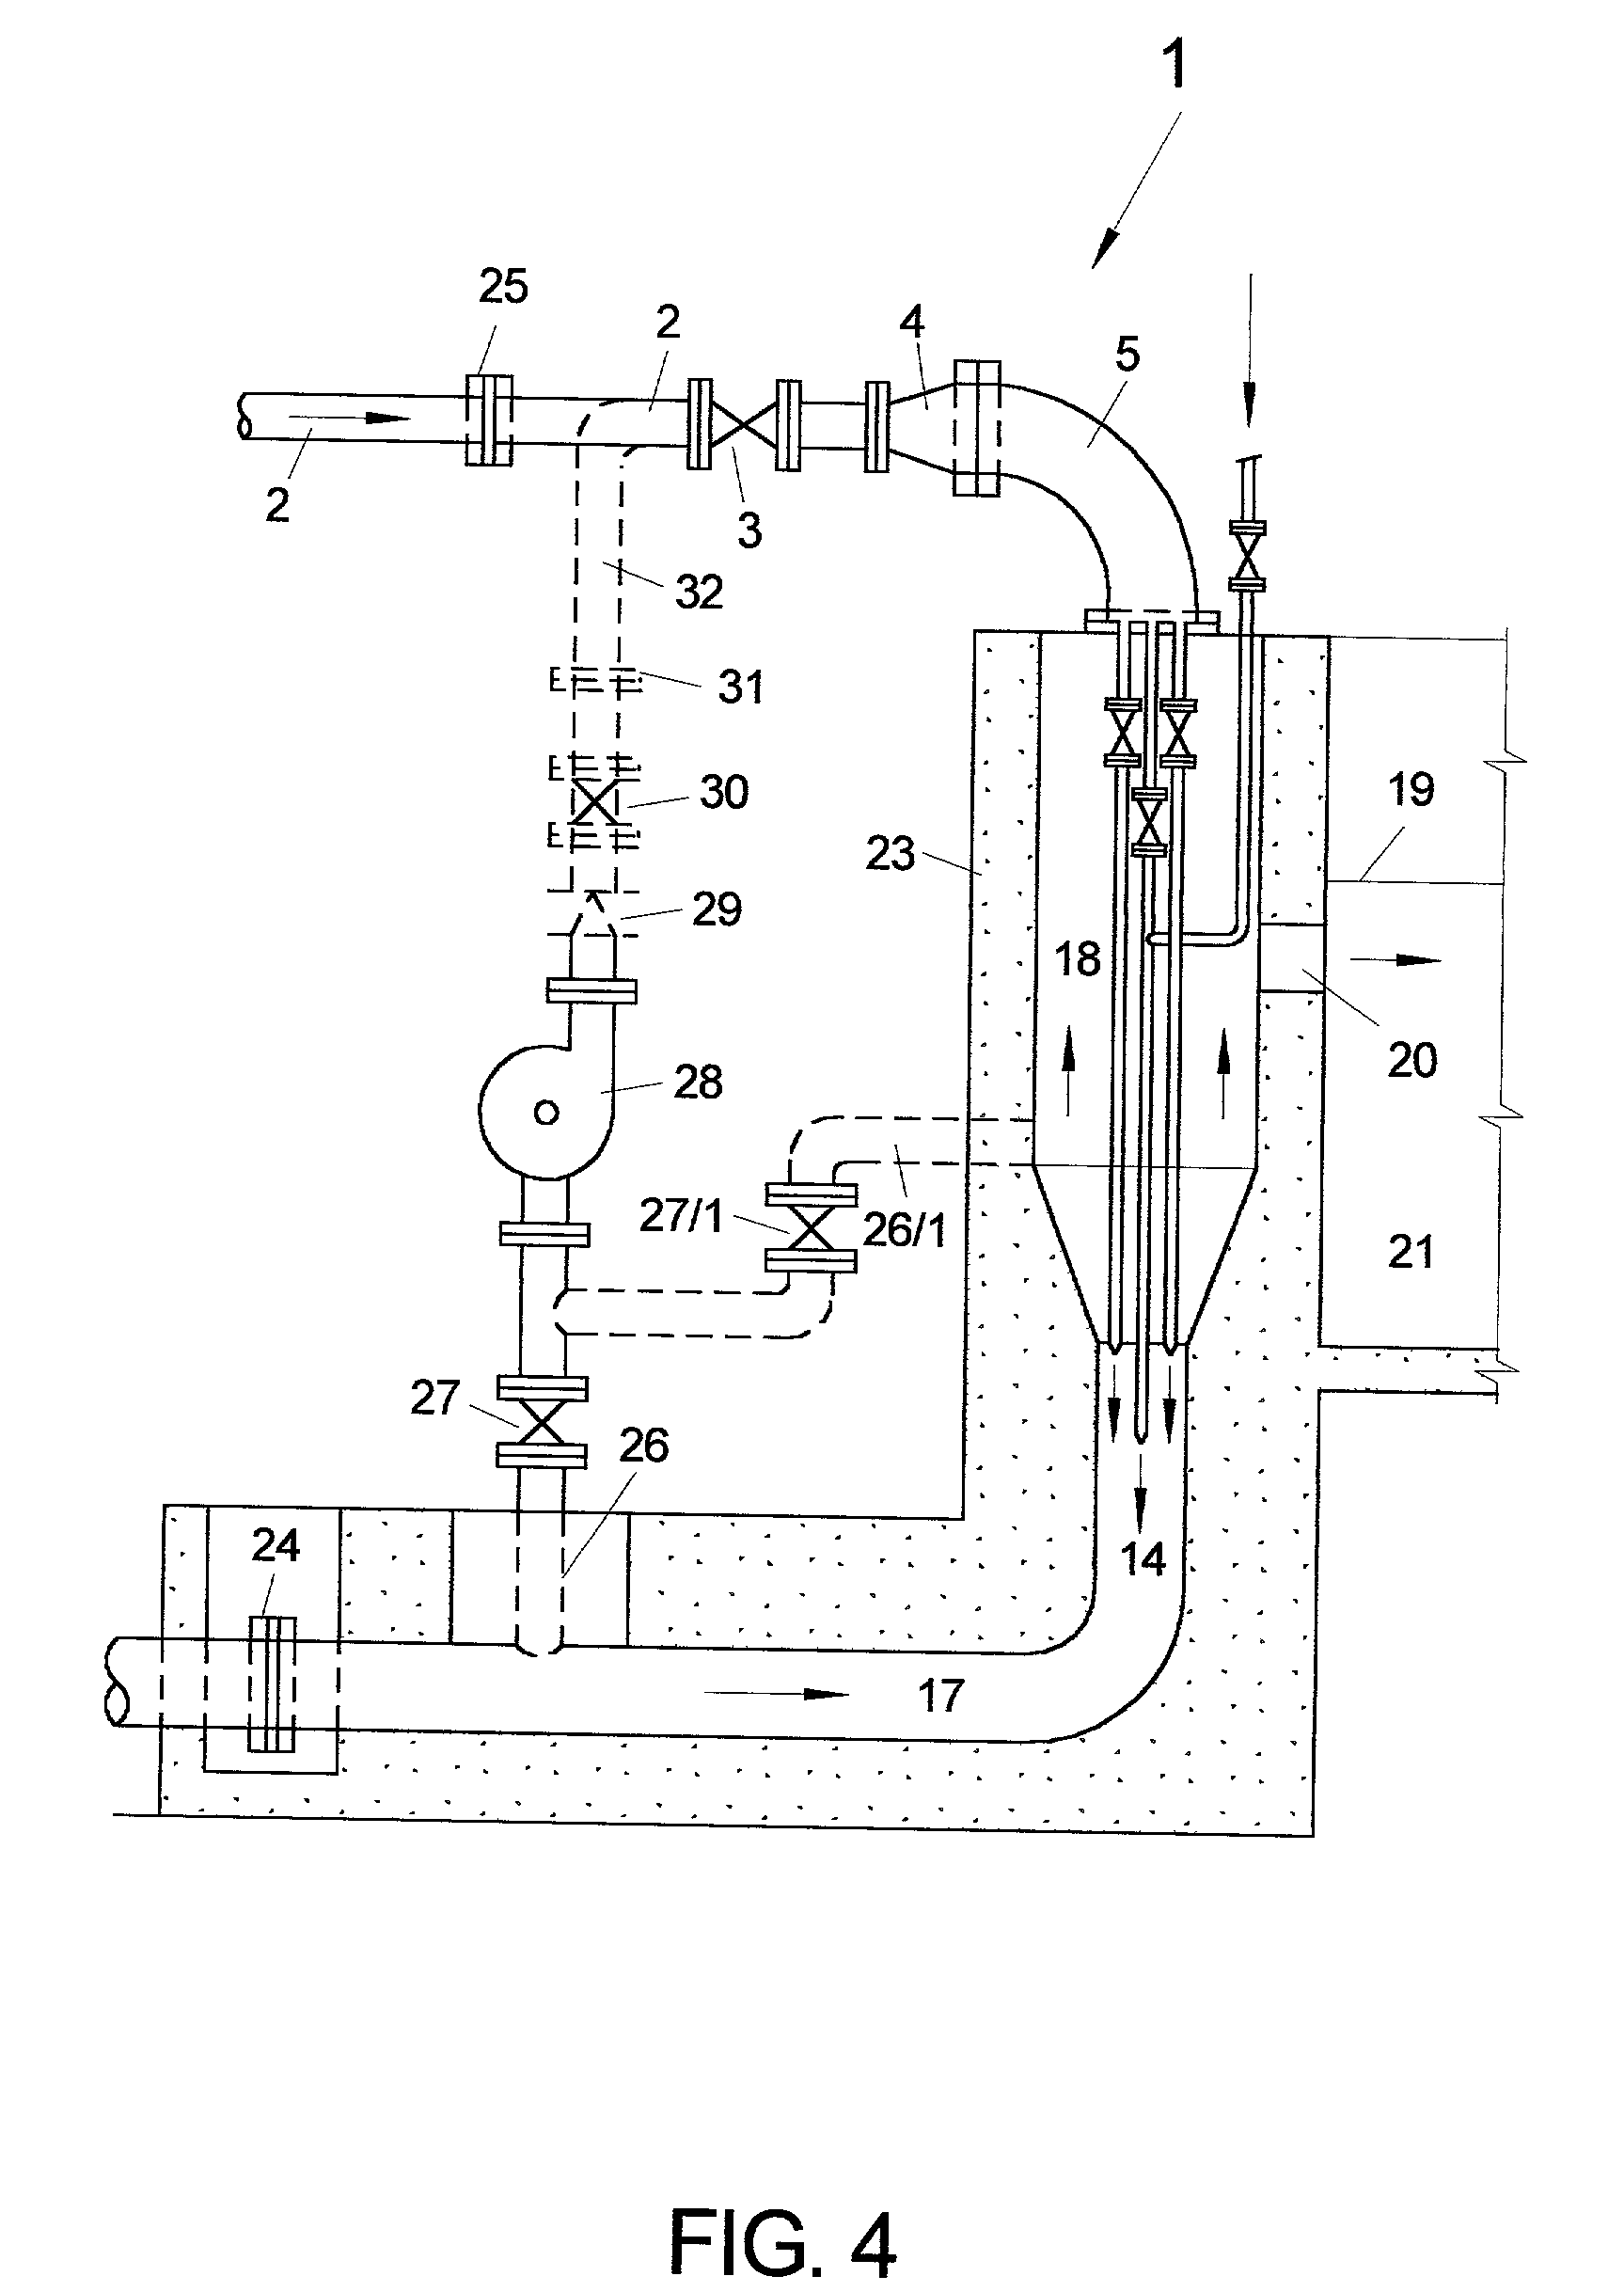 scroll saw labeled. patent drawing scroll saw labeled